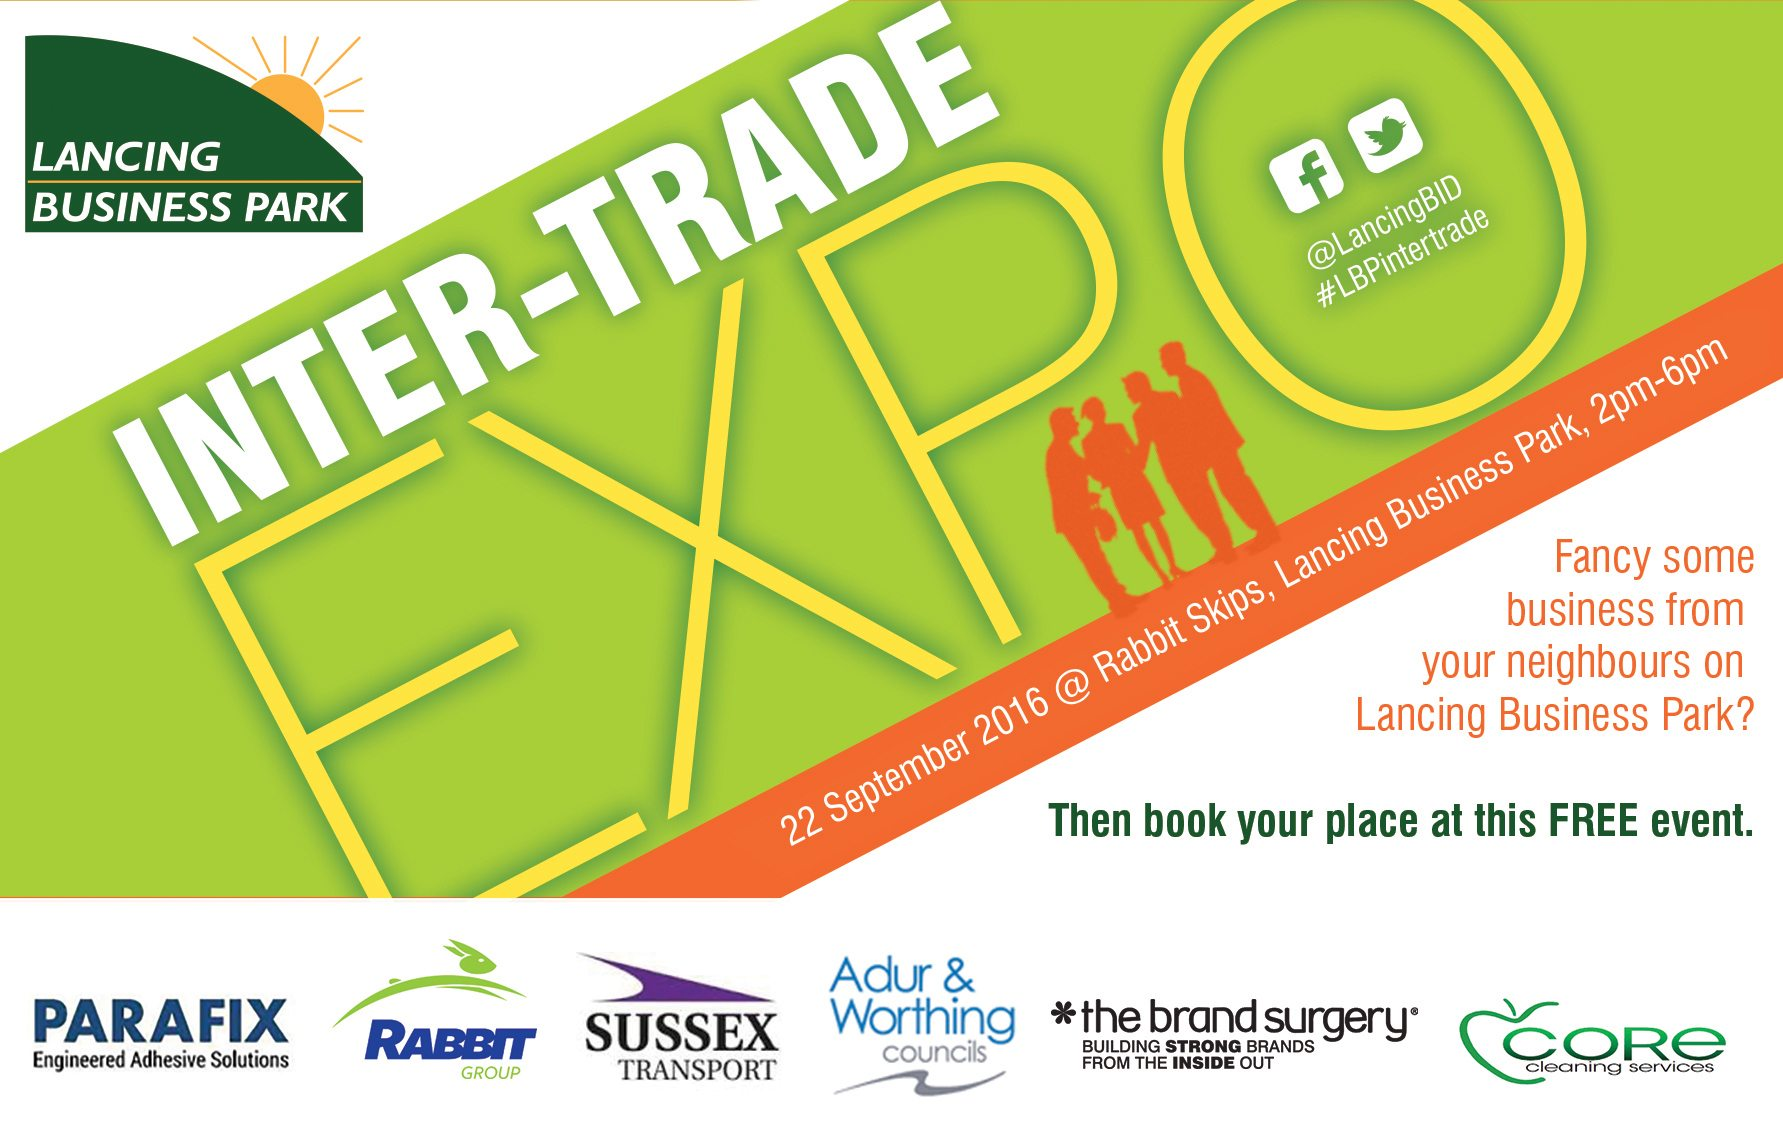 Lancing Business Park intertrading event